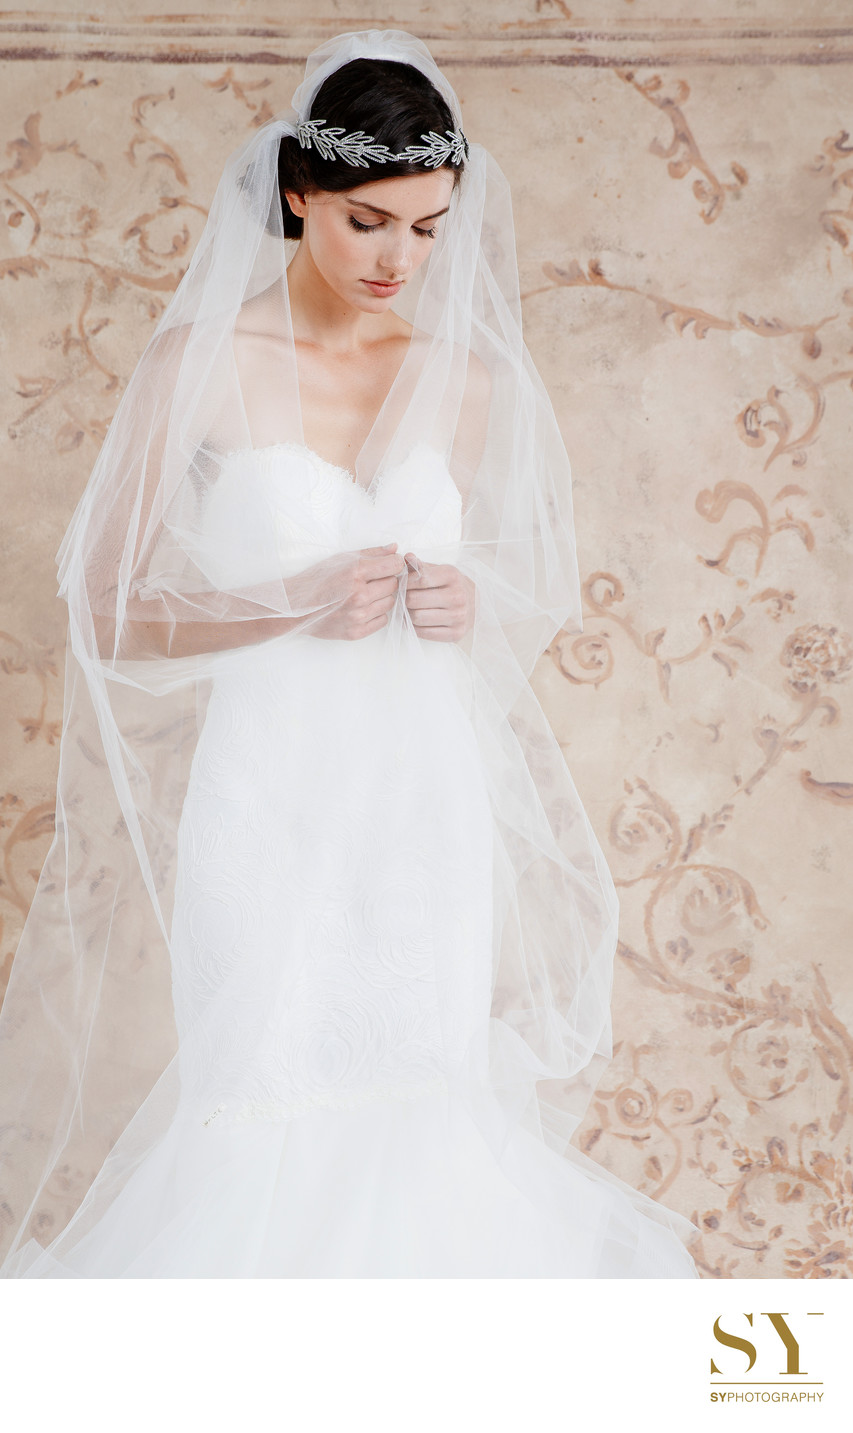 Bridal fashion lookbook Studio photography